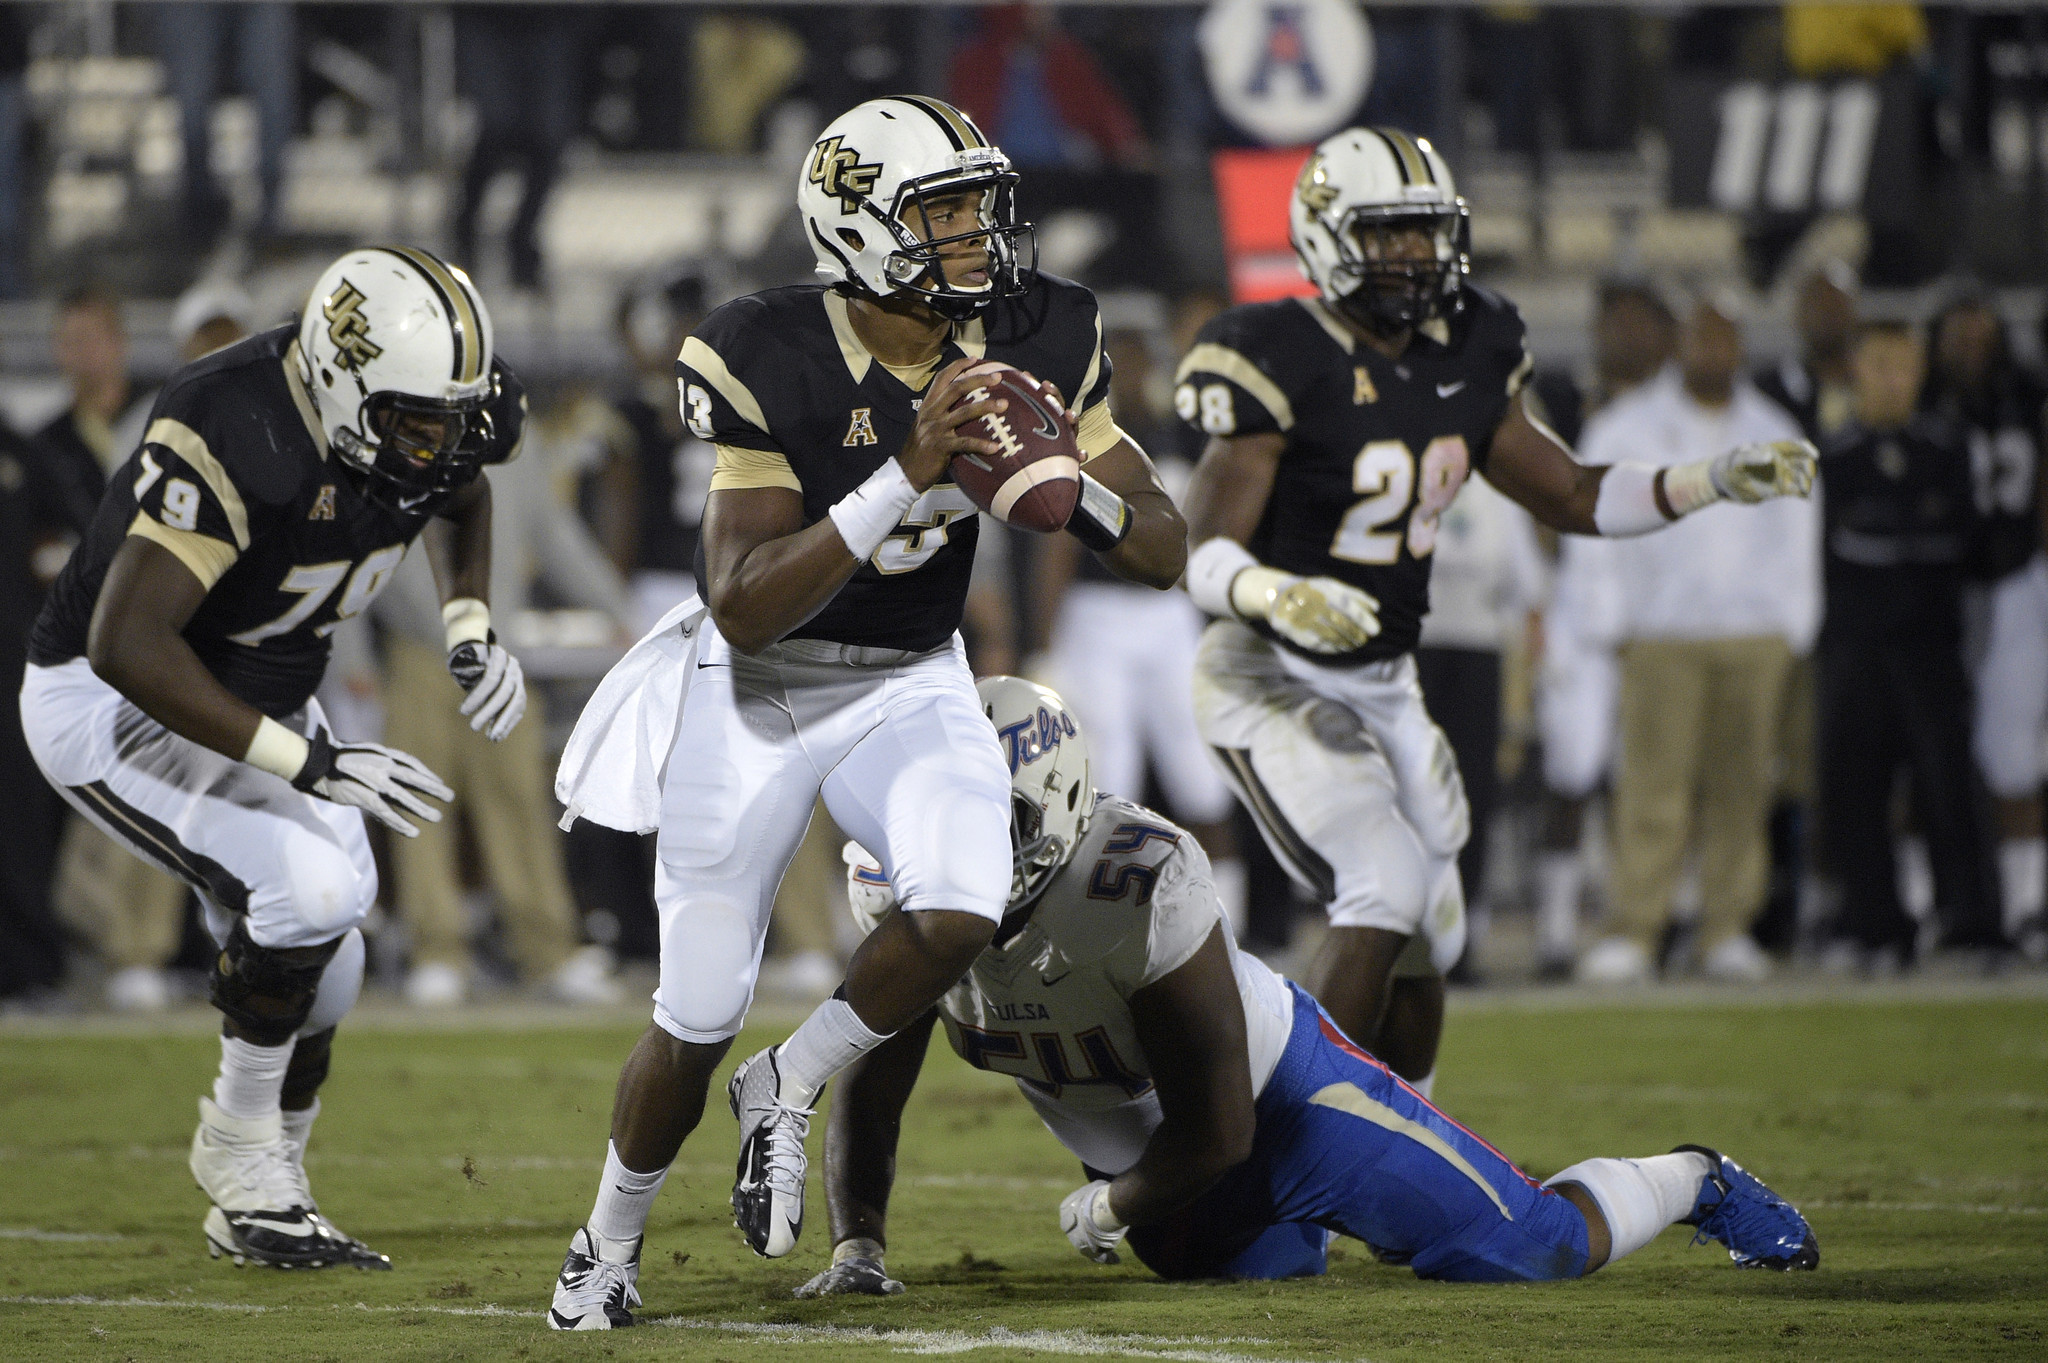 ucf faces challenges chasing third consecutive aac title, knights